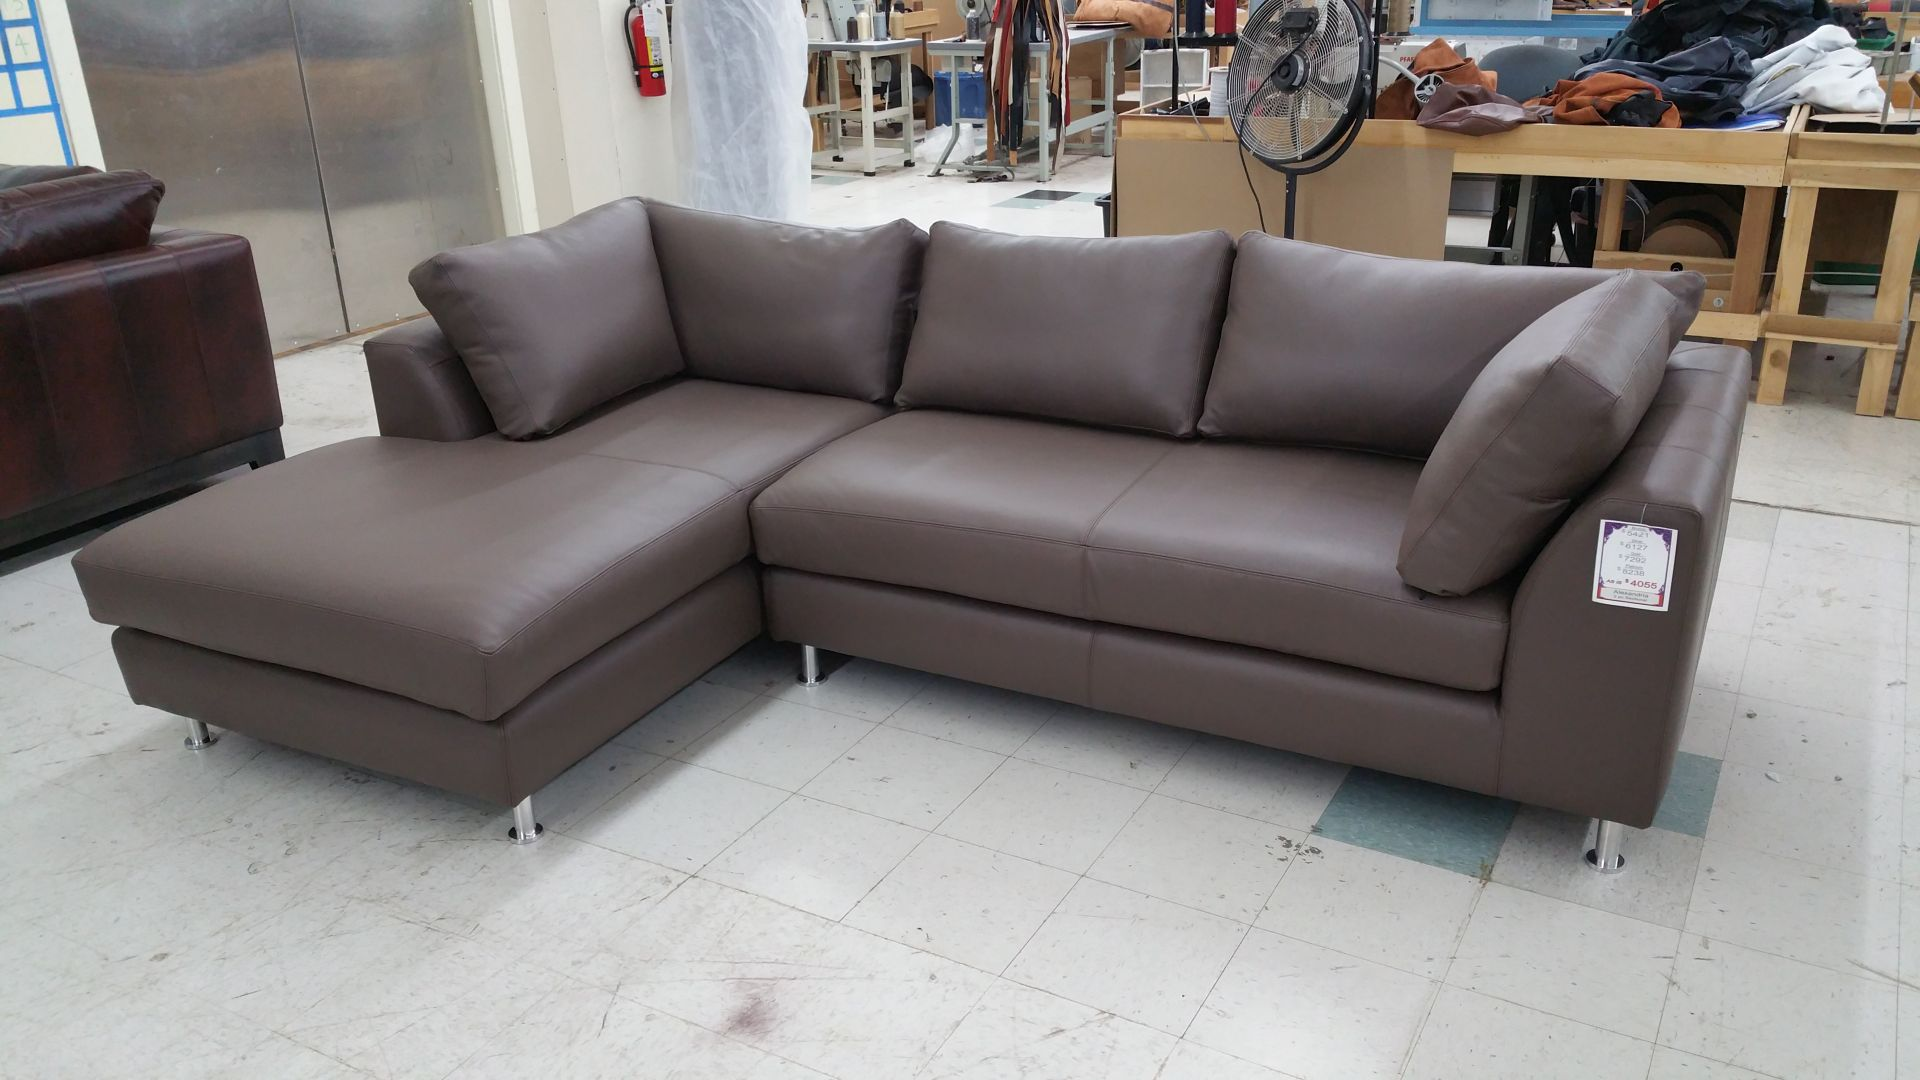 Outlet Sofa Adrian Sofa Graphite Value City Furniture Thesofa